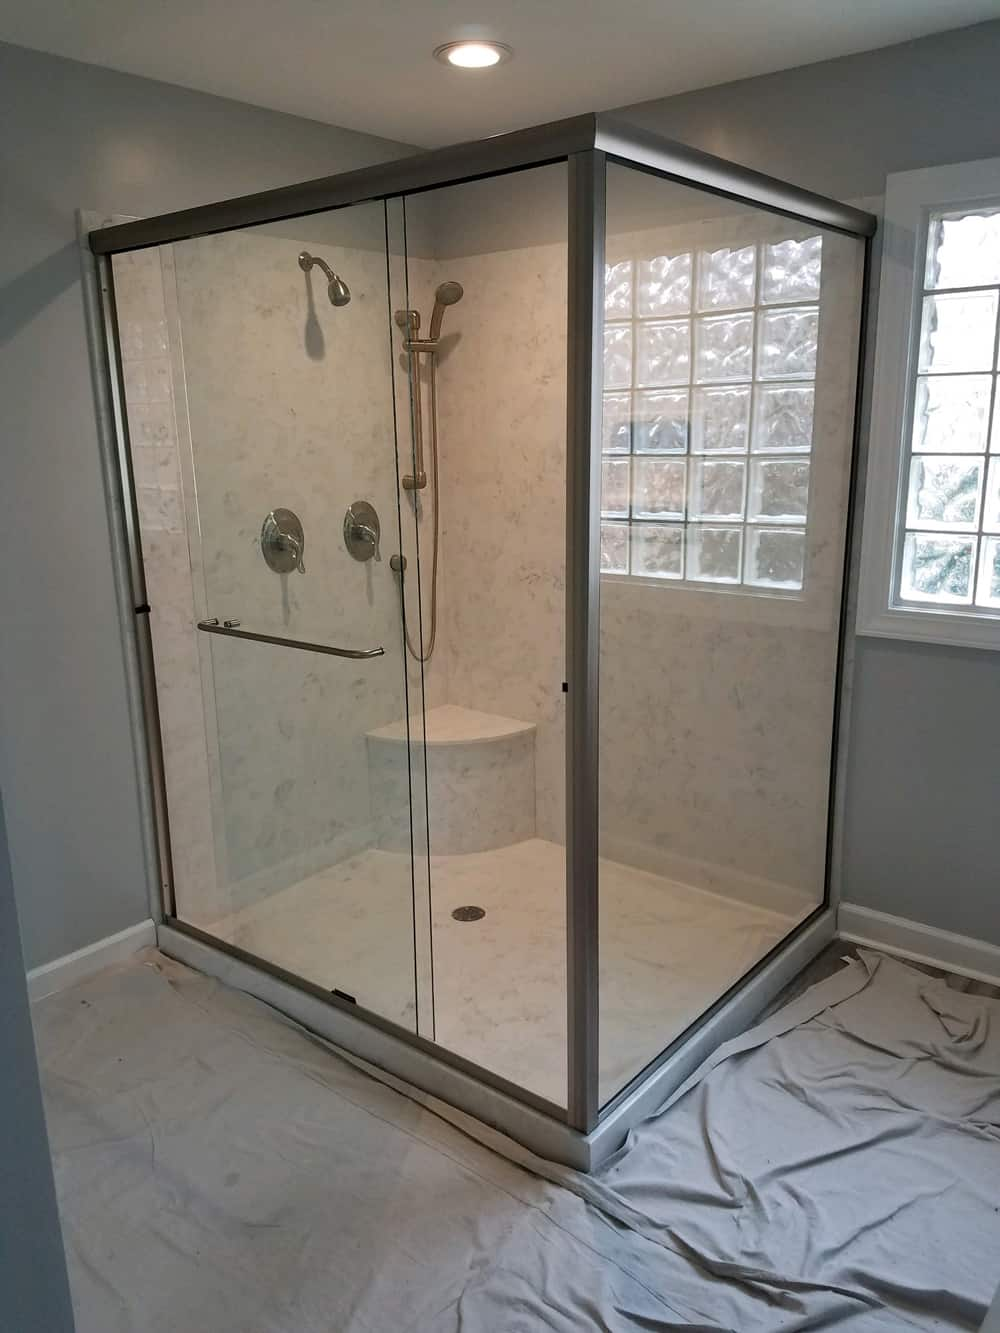 How To Fix Shower Door That Won T Shut